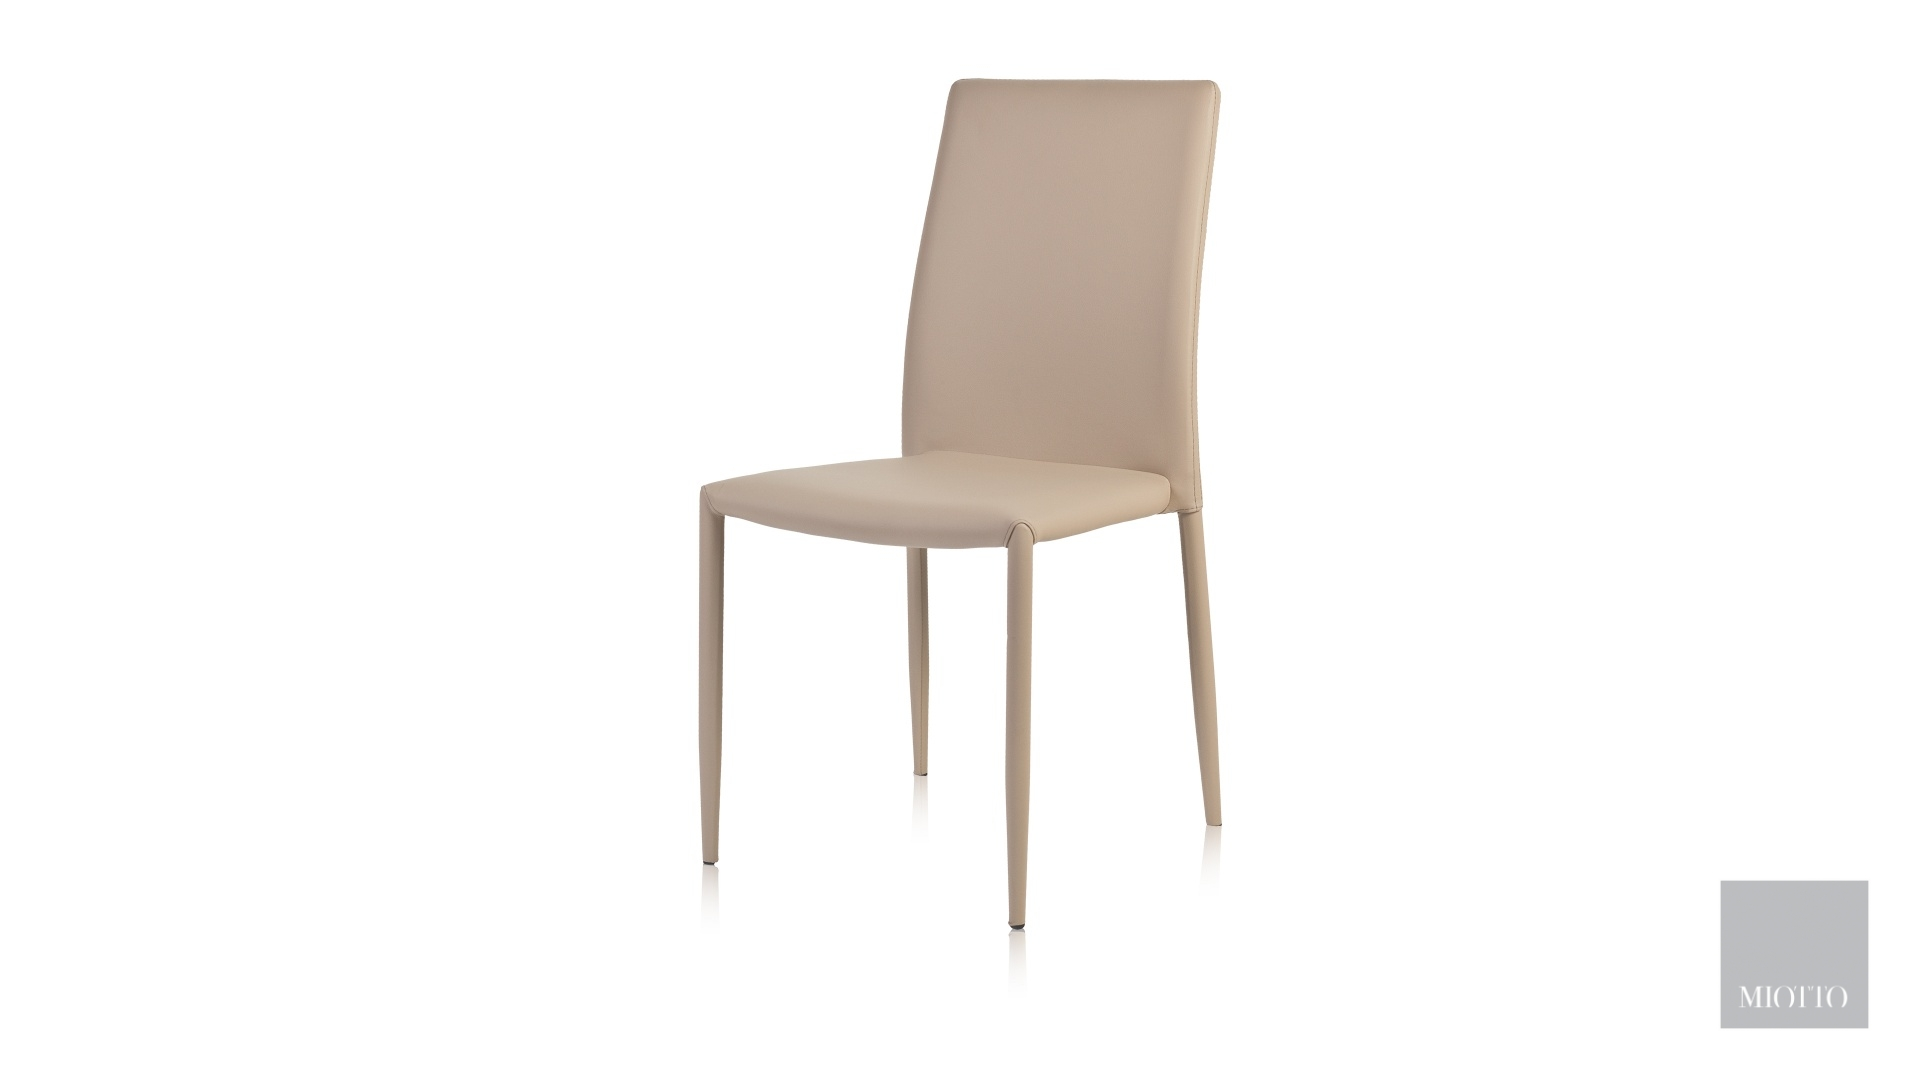 miotto_Lara dining chair pu cream front miotto furniture